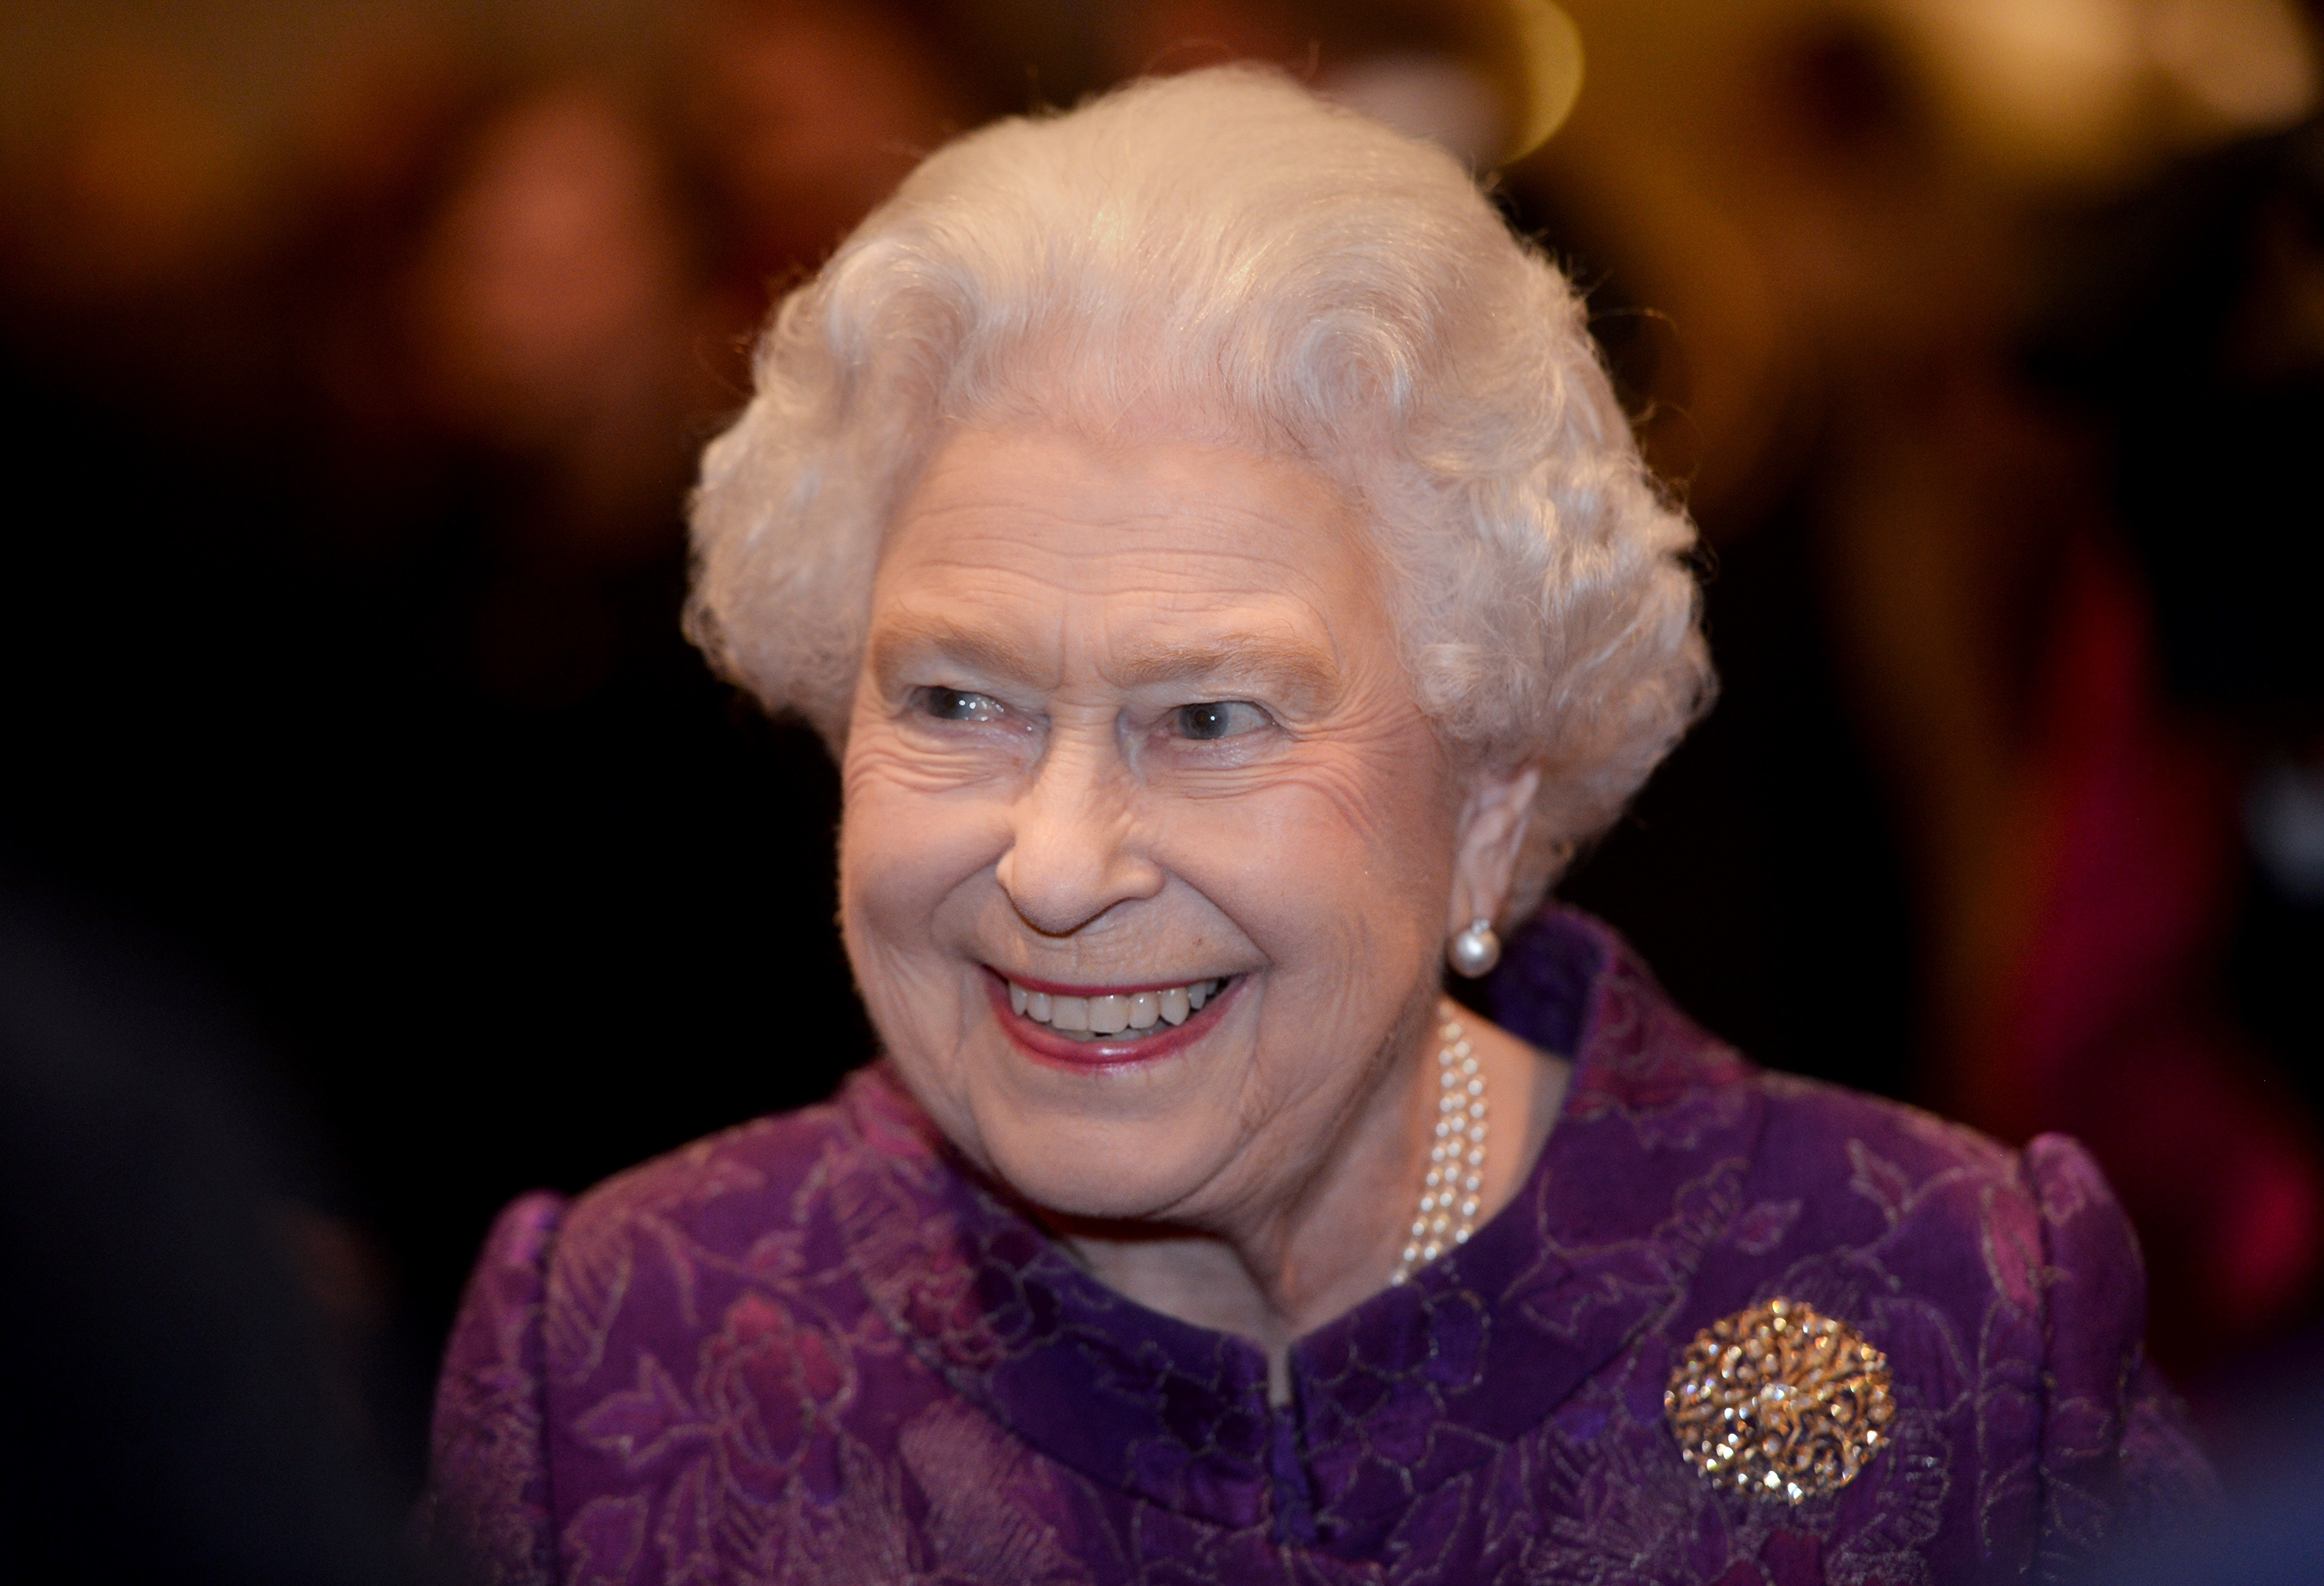 LONDON, UNITED KINGDOM - MARCH 16: Queen Elizabeth II meets guests during a reception for the High Commissioners' Banquet to mark Commonwealth Week at the Guildhall on March 16, 2016 in London, United Kingdom. (Photo by Anthony Devlin - WPA Pool/Getty Images)